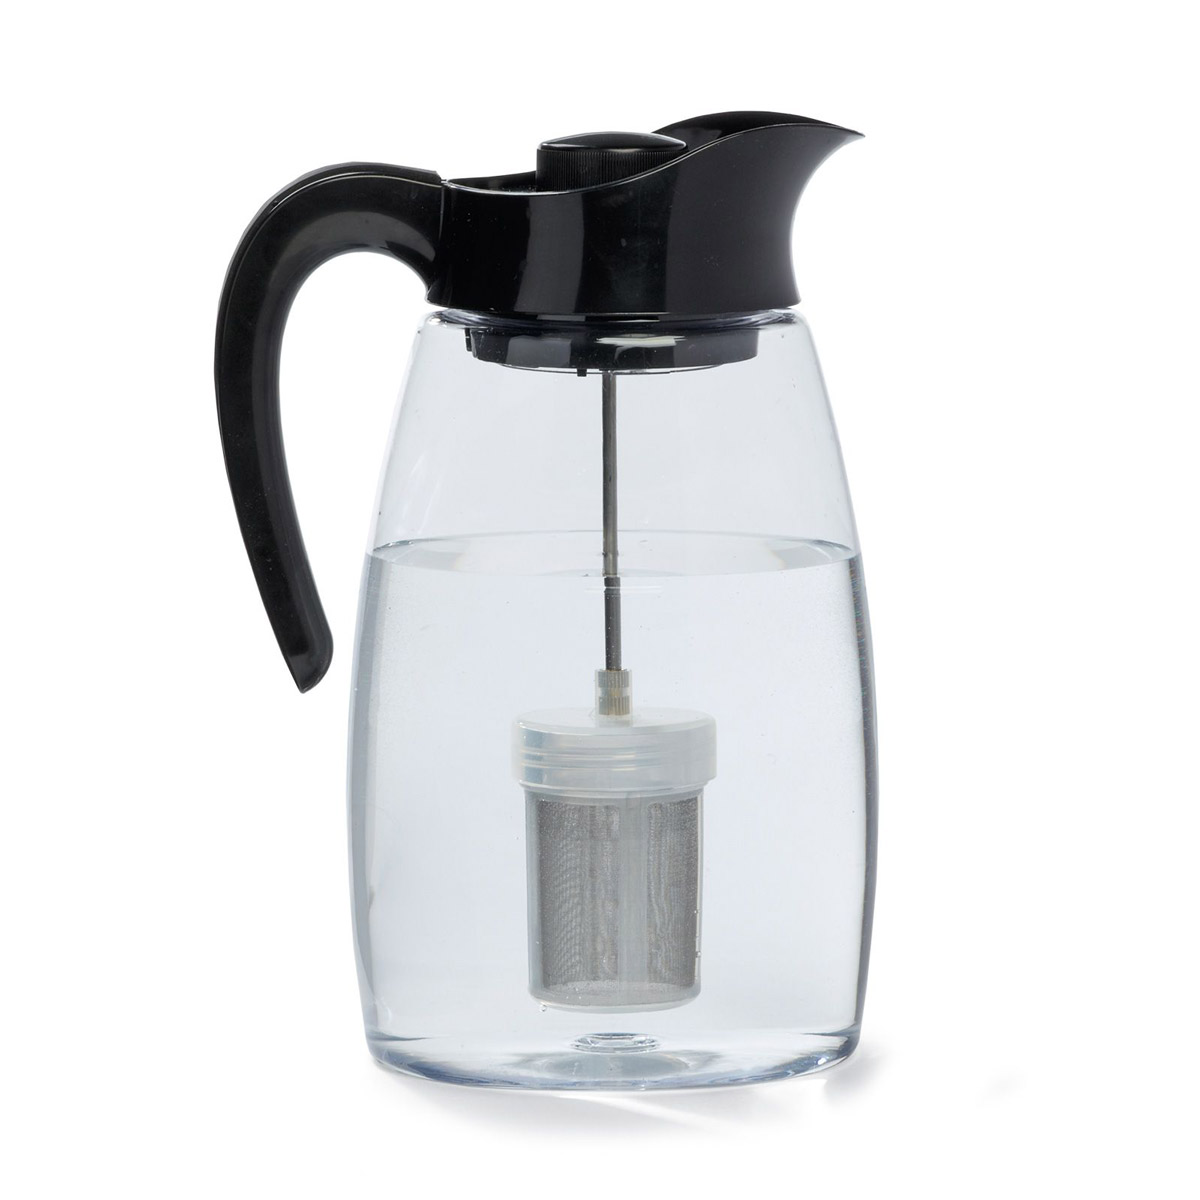 Flavor It Infusion Pitcher 3 In 1 Beverage System